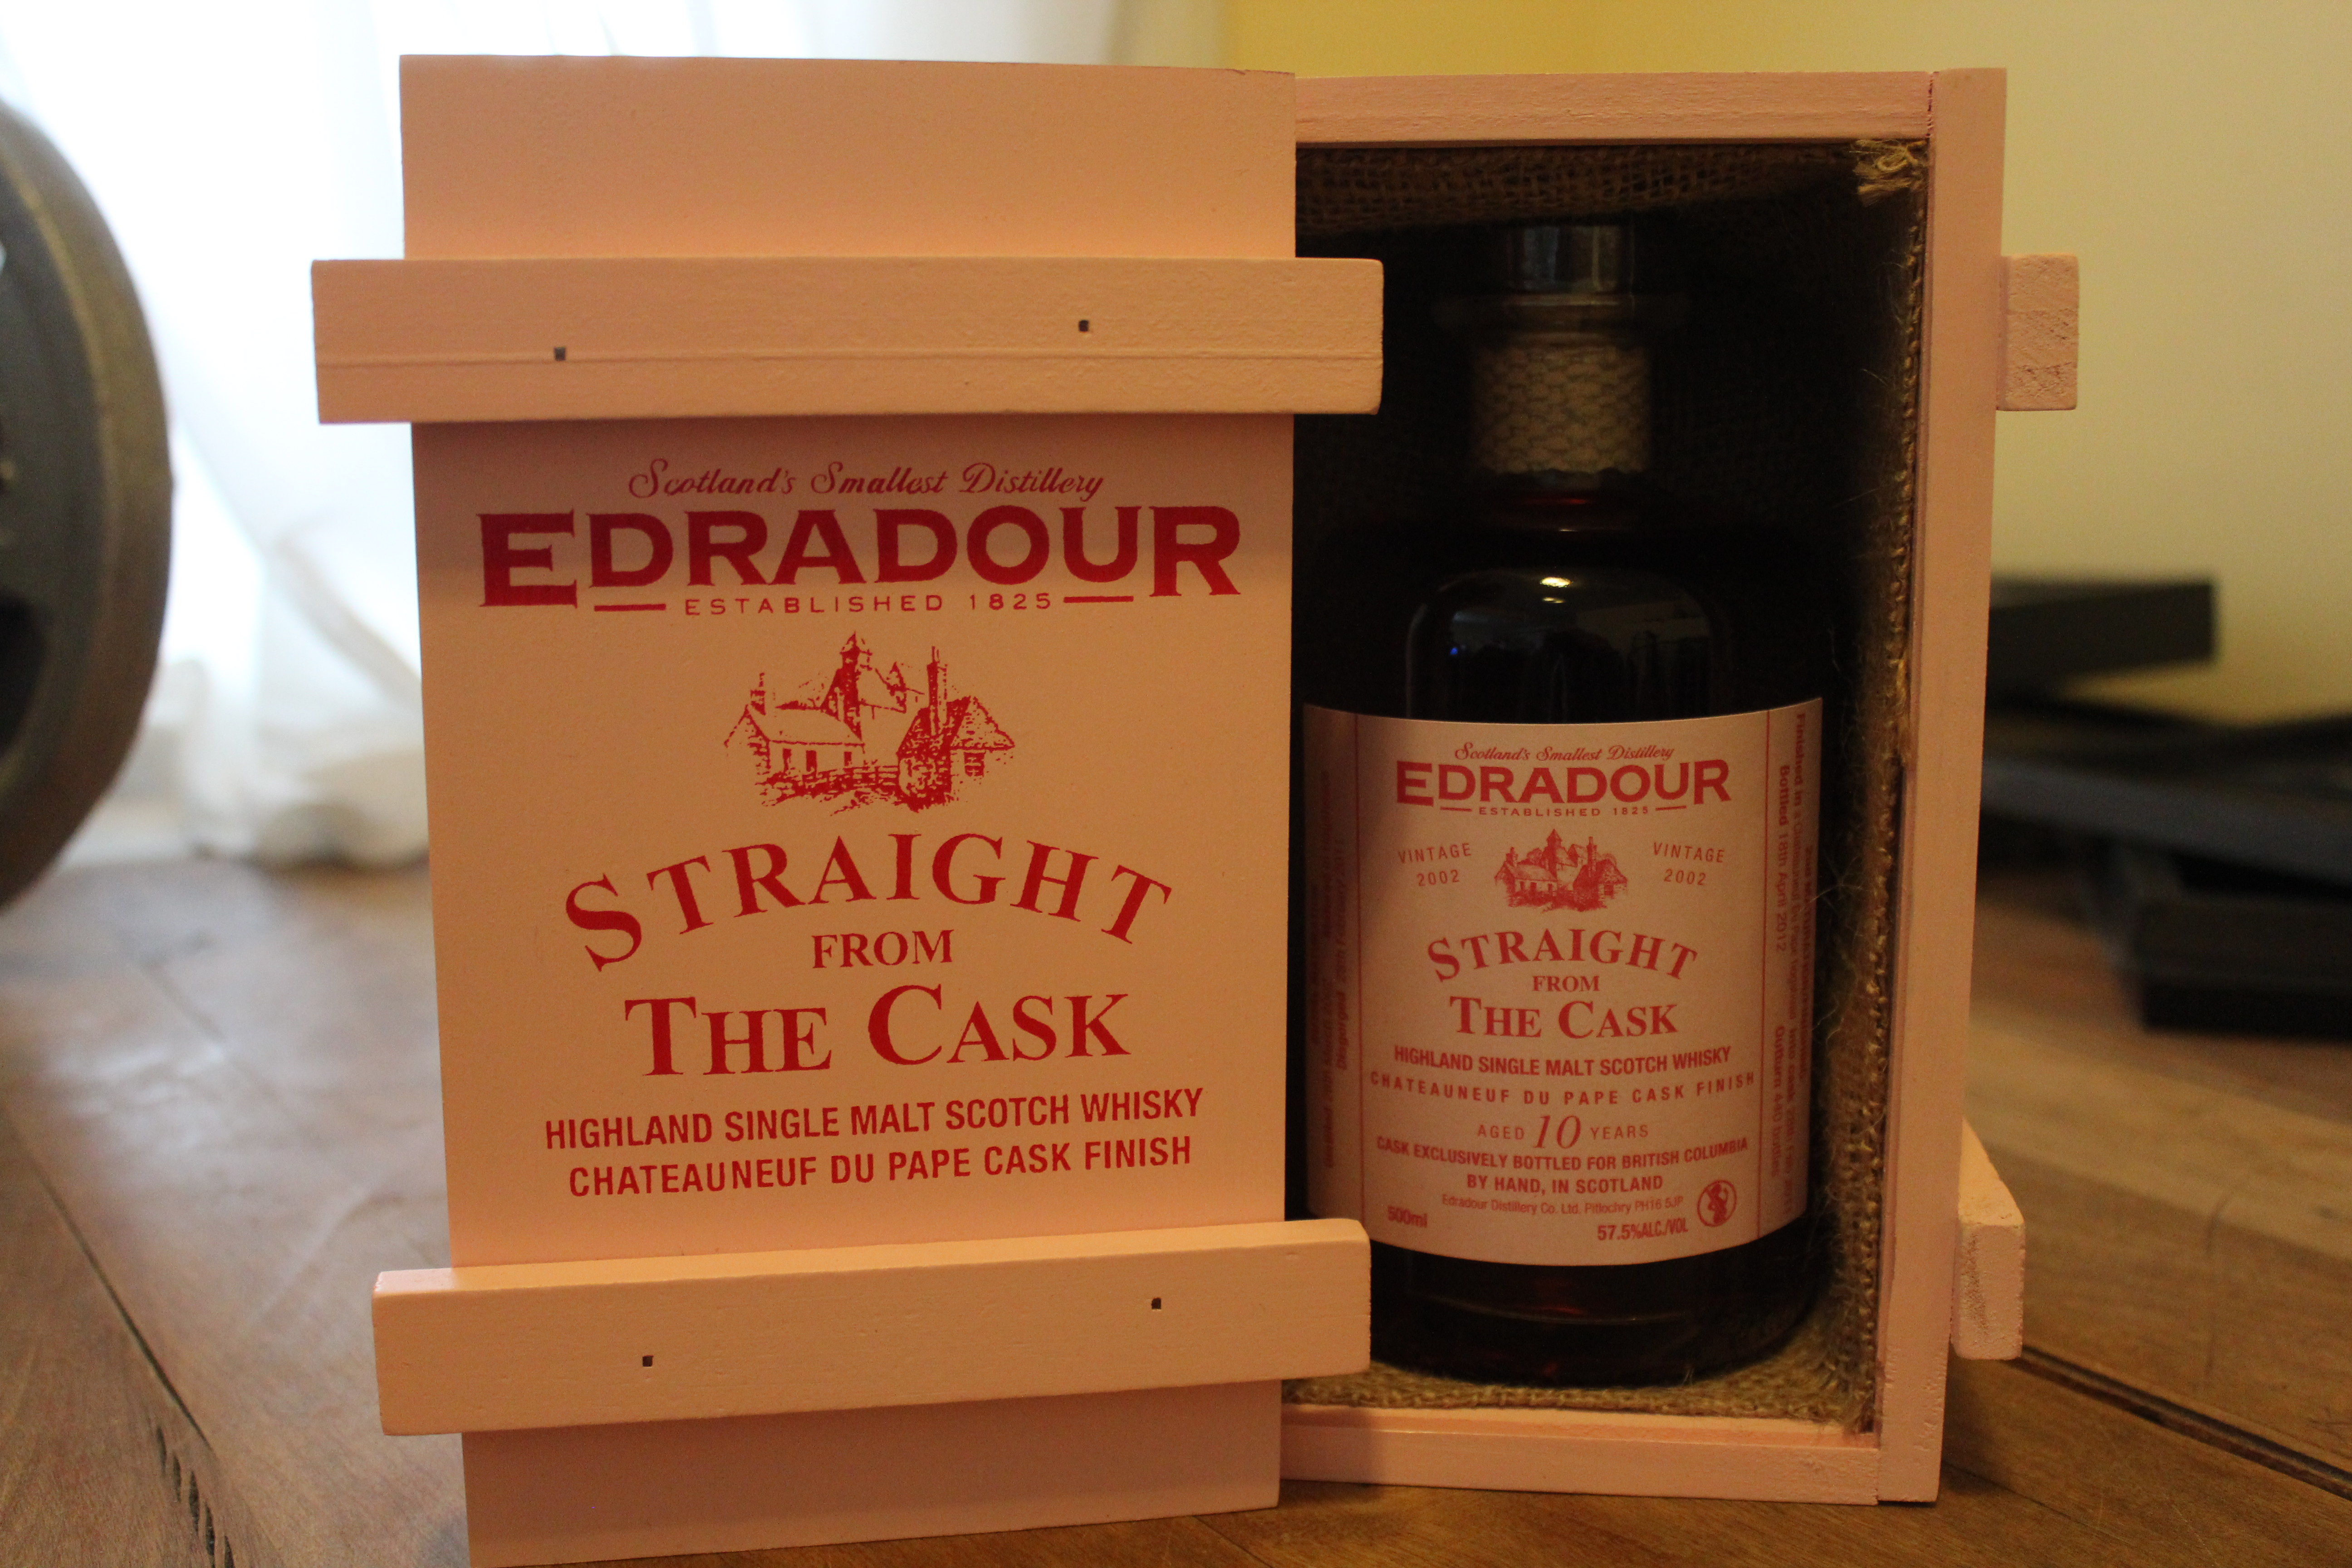 Edradour Straight from the Cask 10y Chateauneuf du Pape Cask Finish with The Dan